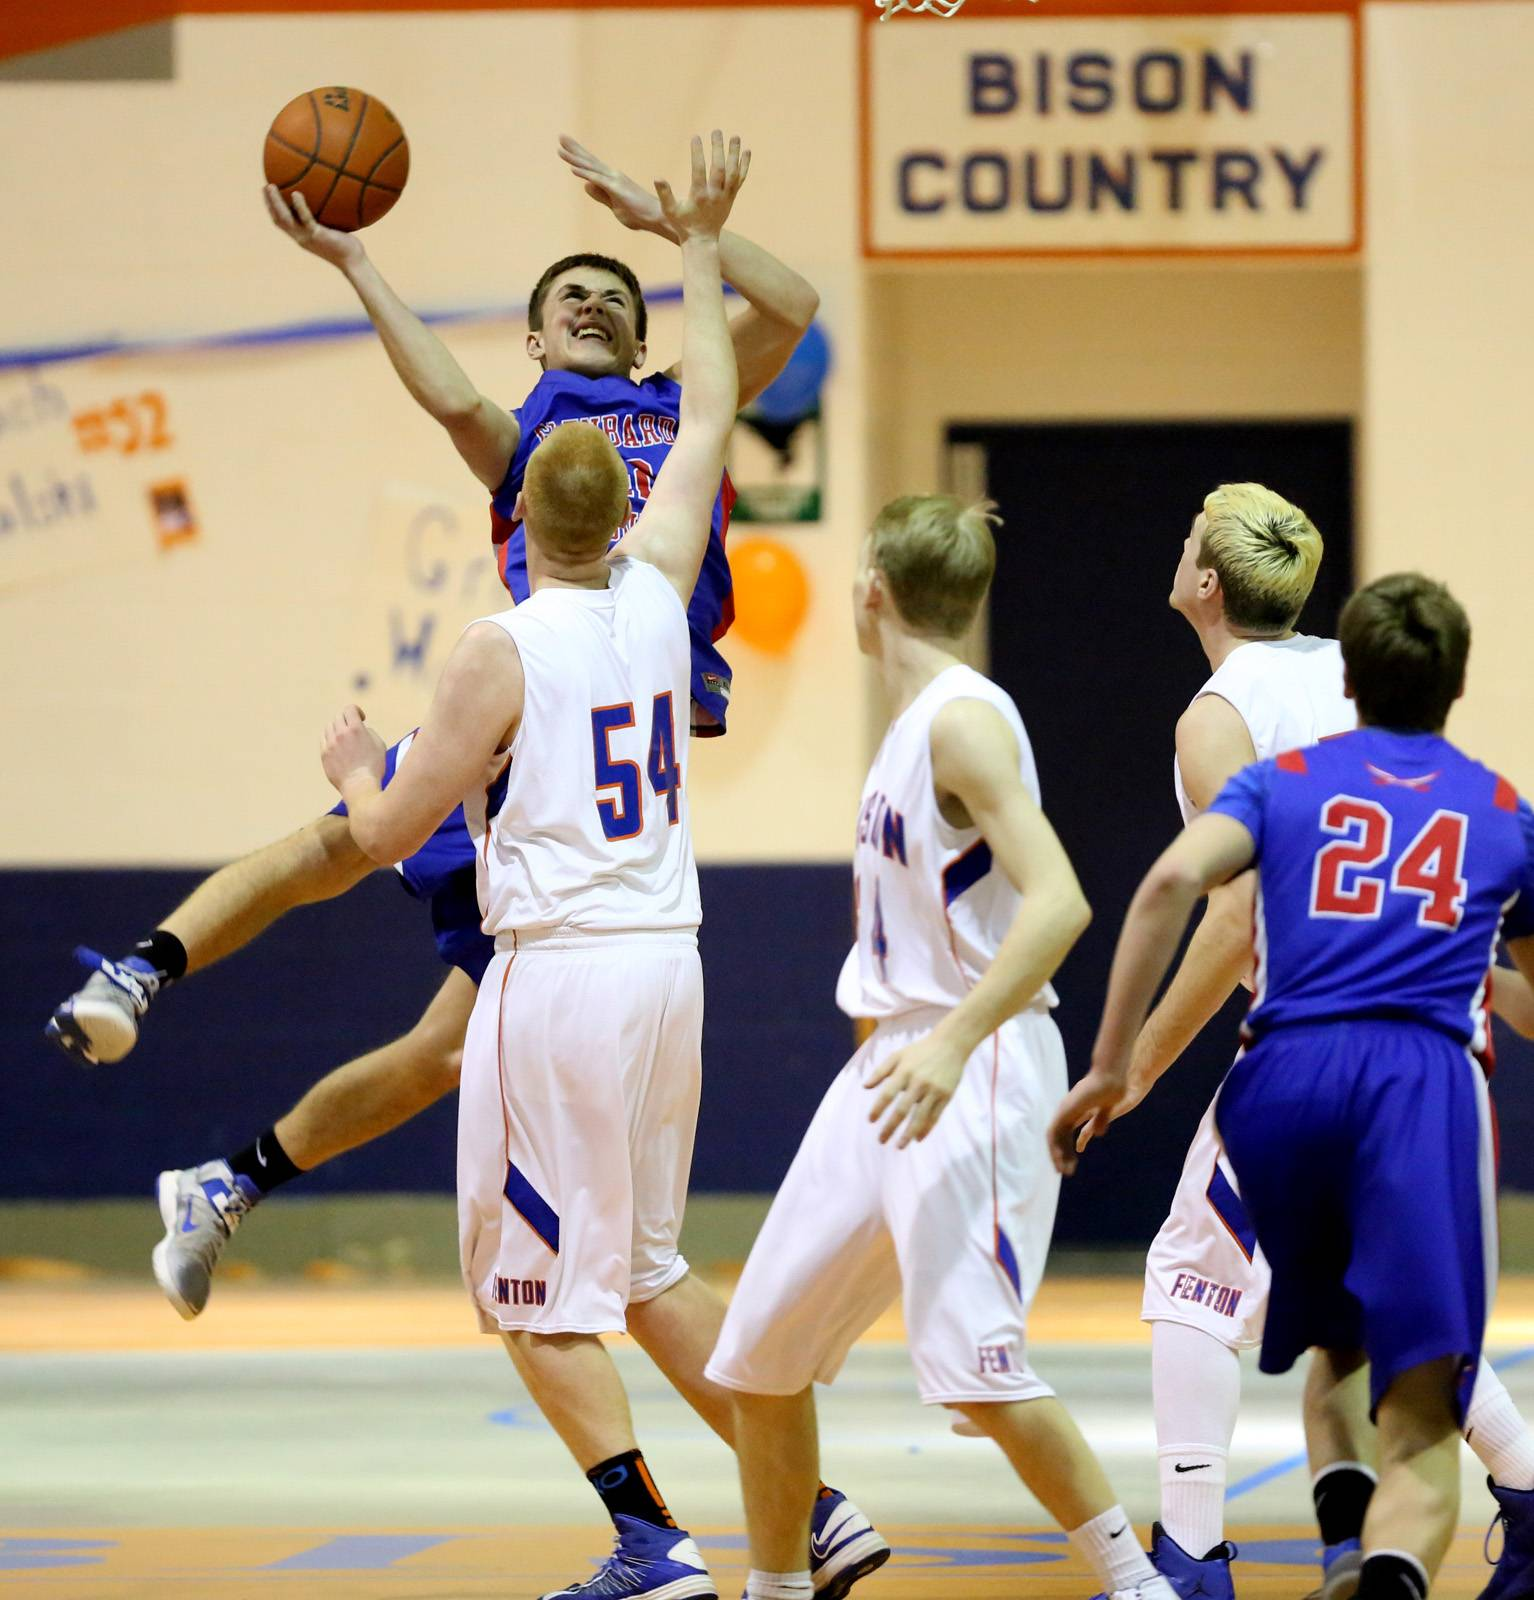 Images from the Glenbard South vs. Fenton boys basketball game on Friday, Feb. 28, 2014.